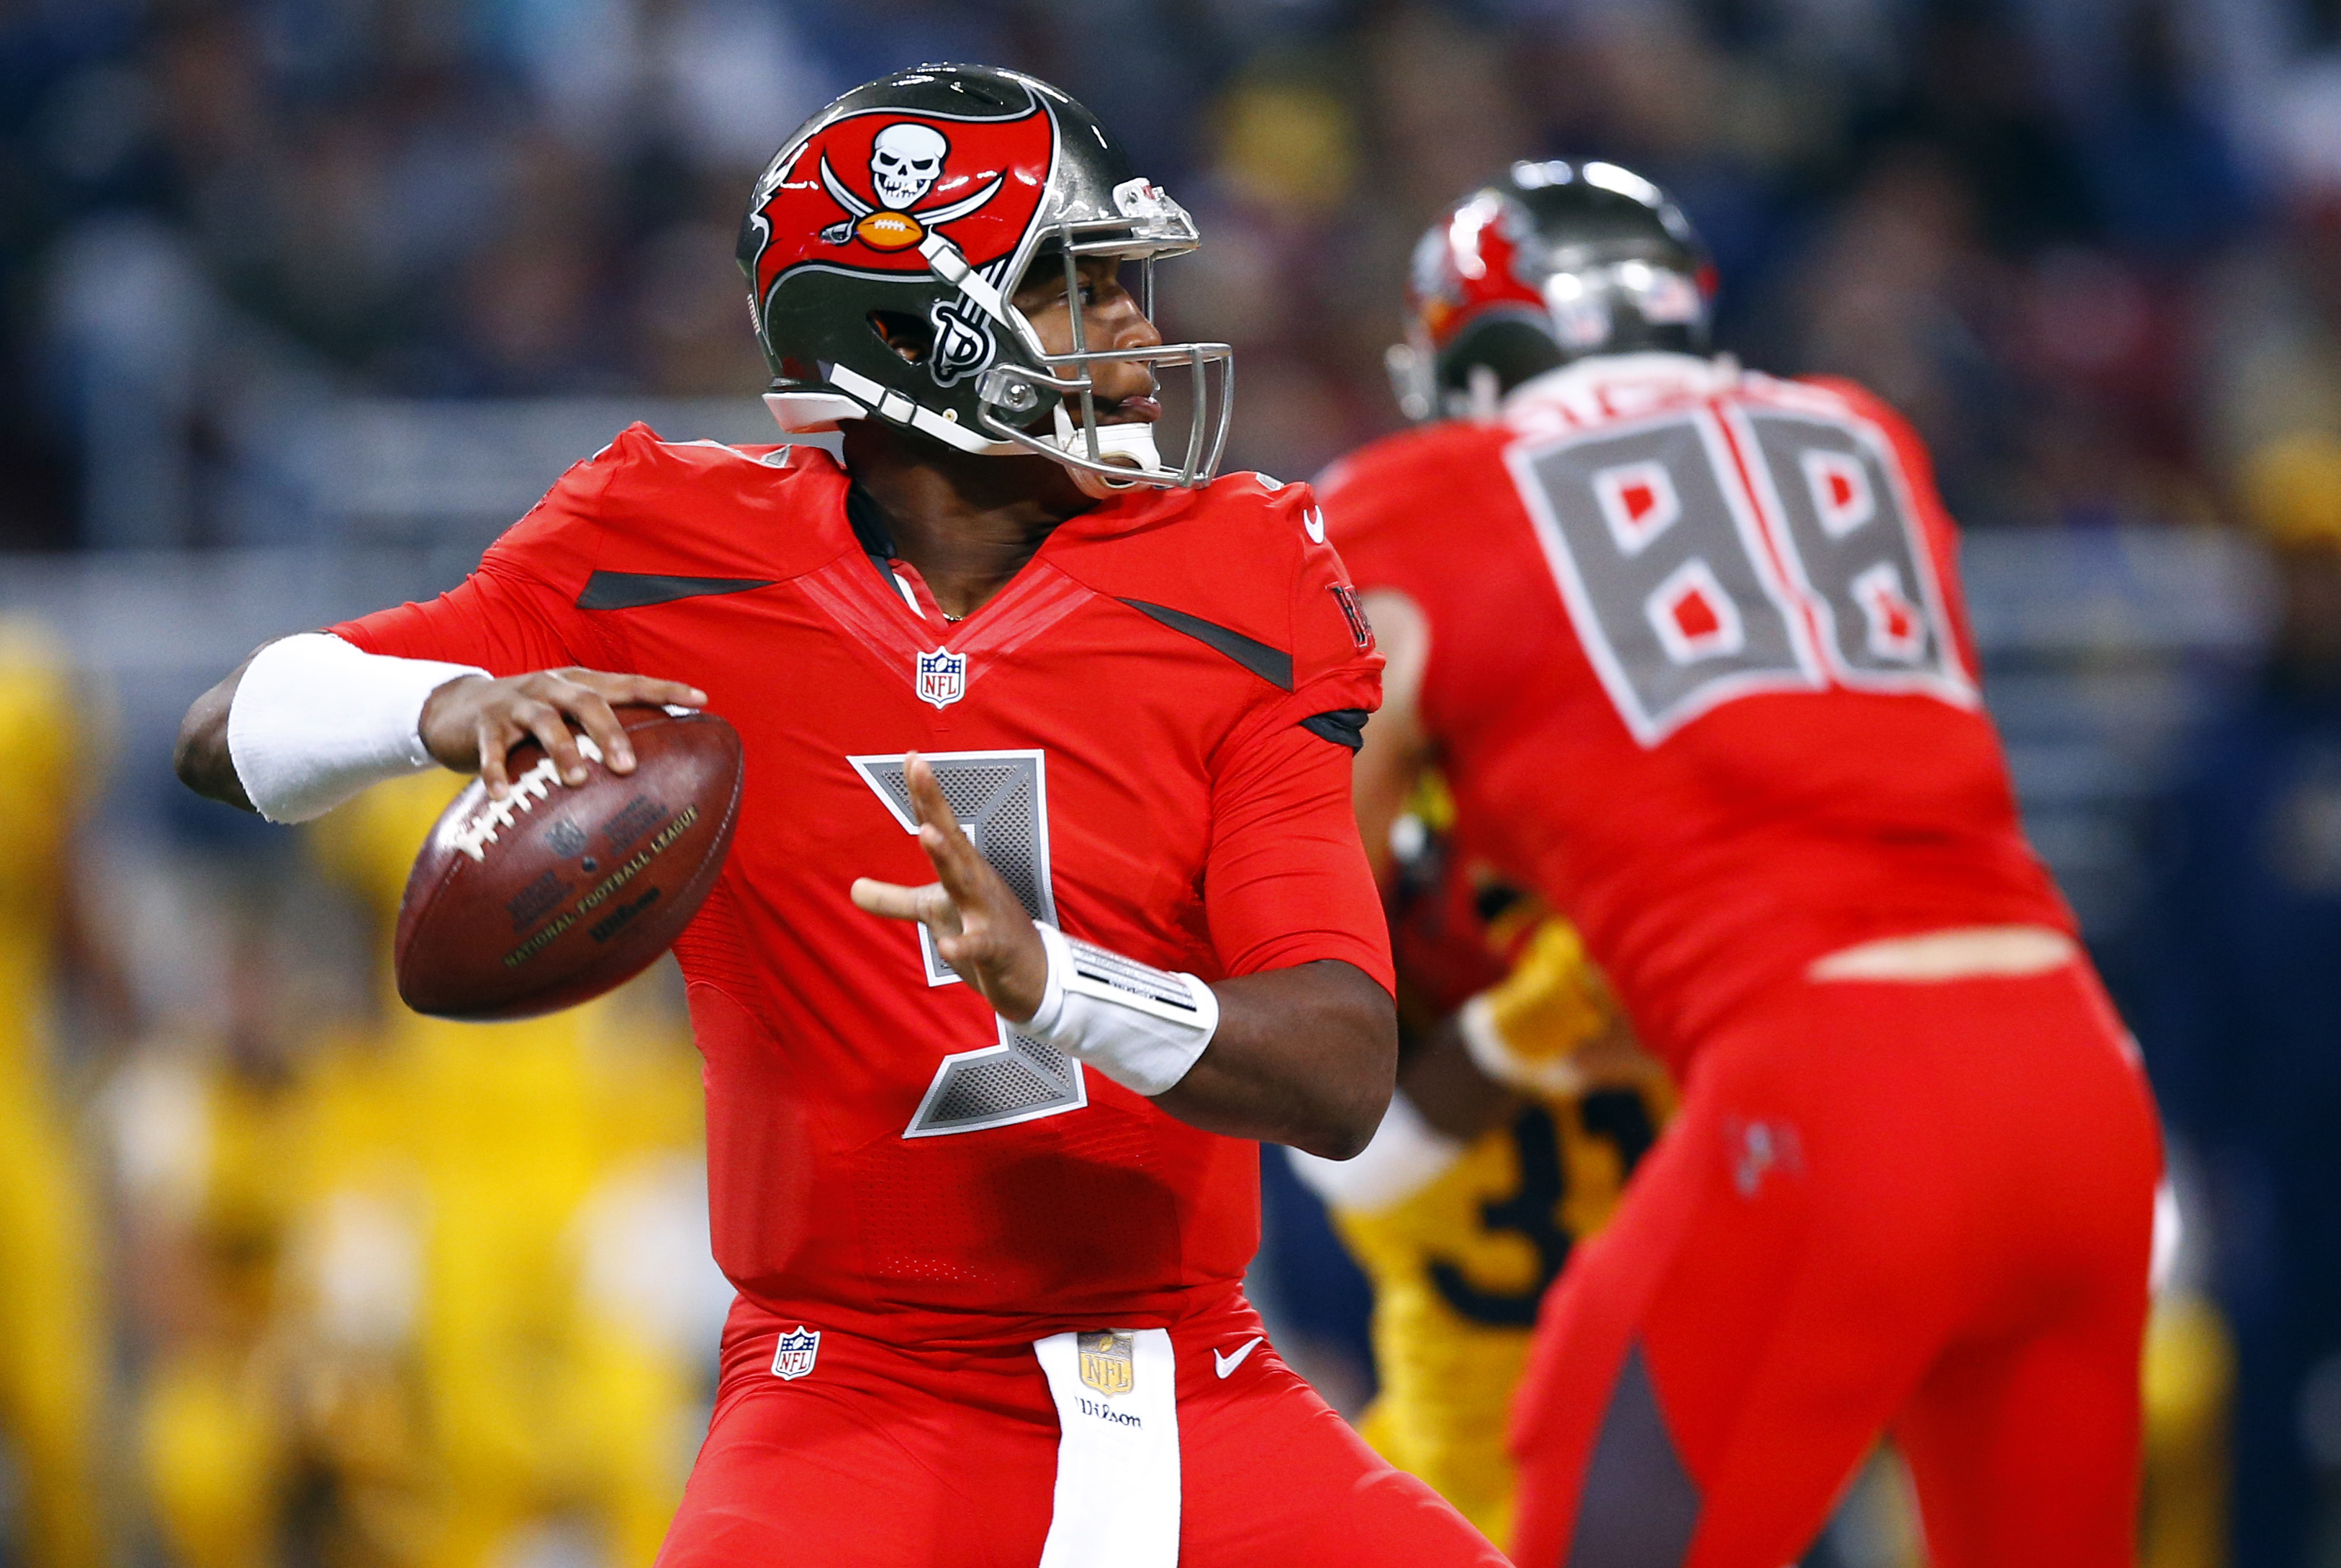 FILE - In this Dec. 17, 2015, file photo, Tampa Bay Buccaneers quarterback Jameis Winston looks to pass during the first quarter of an NFL football game against the St. Louis Rams in St. Louis. The Buccaneers play the Chicago Bears on Sunday, Dec. 27, in